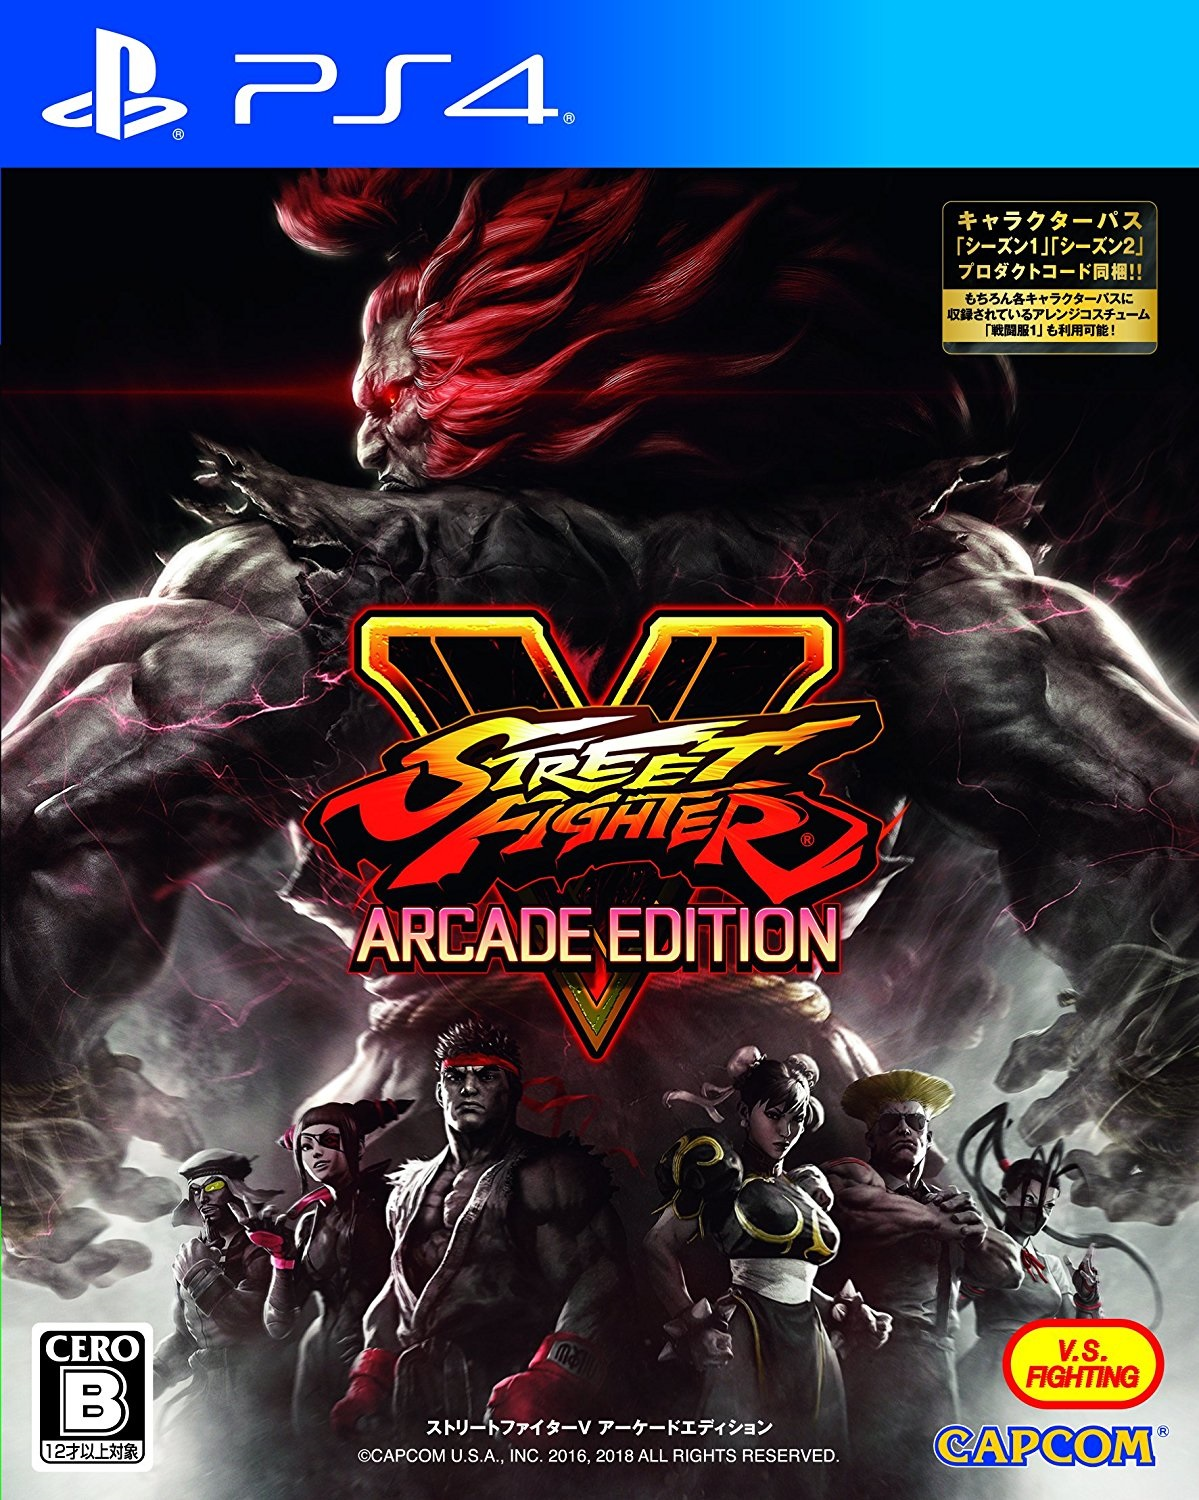 STREET FIGHTER 5 ARCADE EDITION 高価買取中